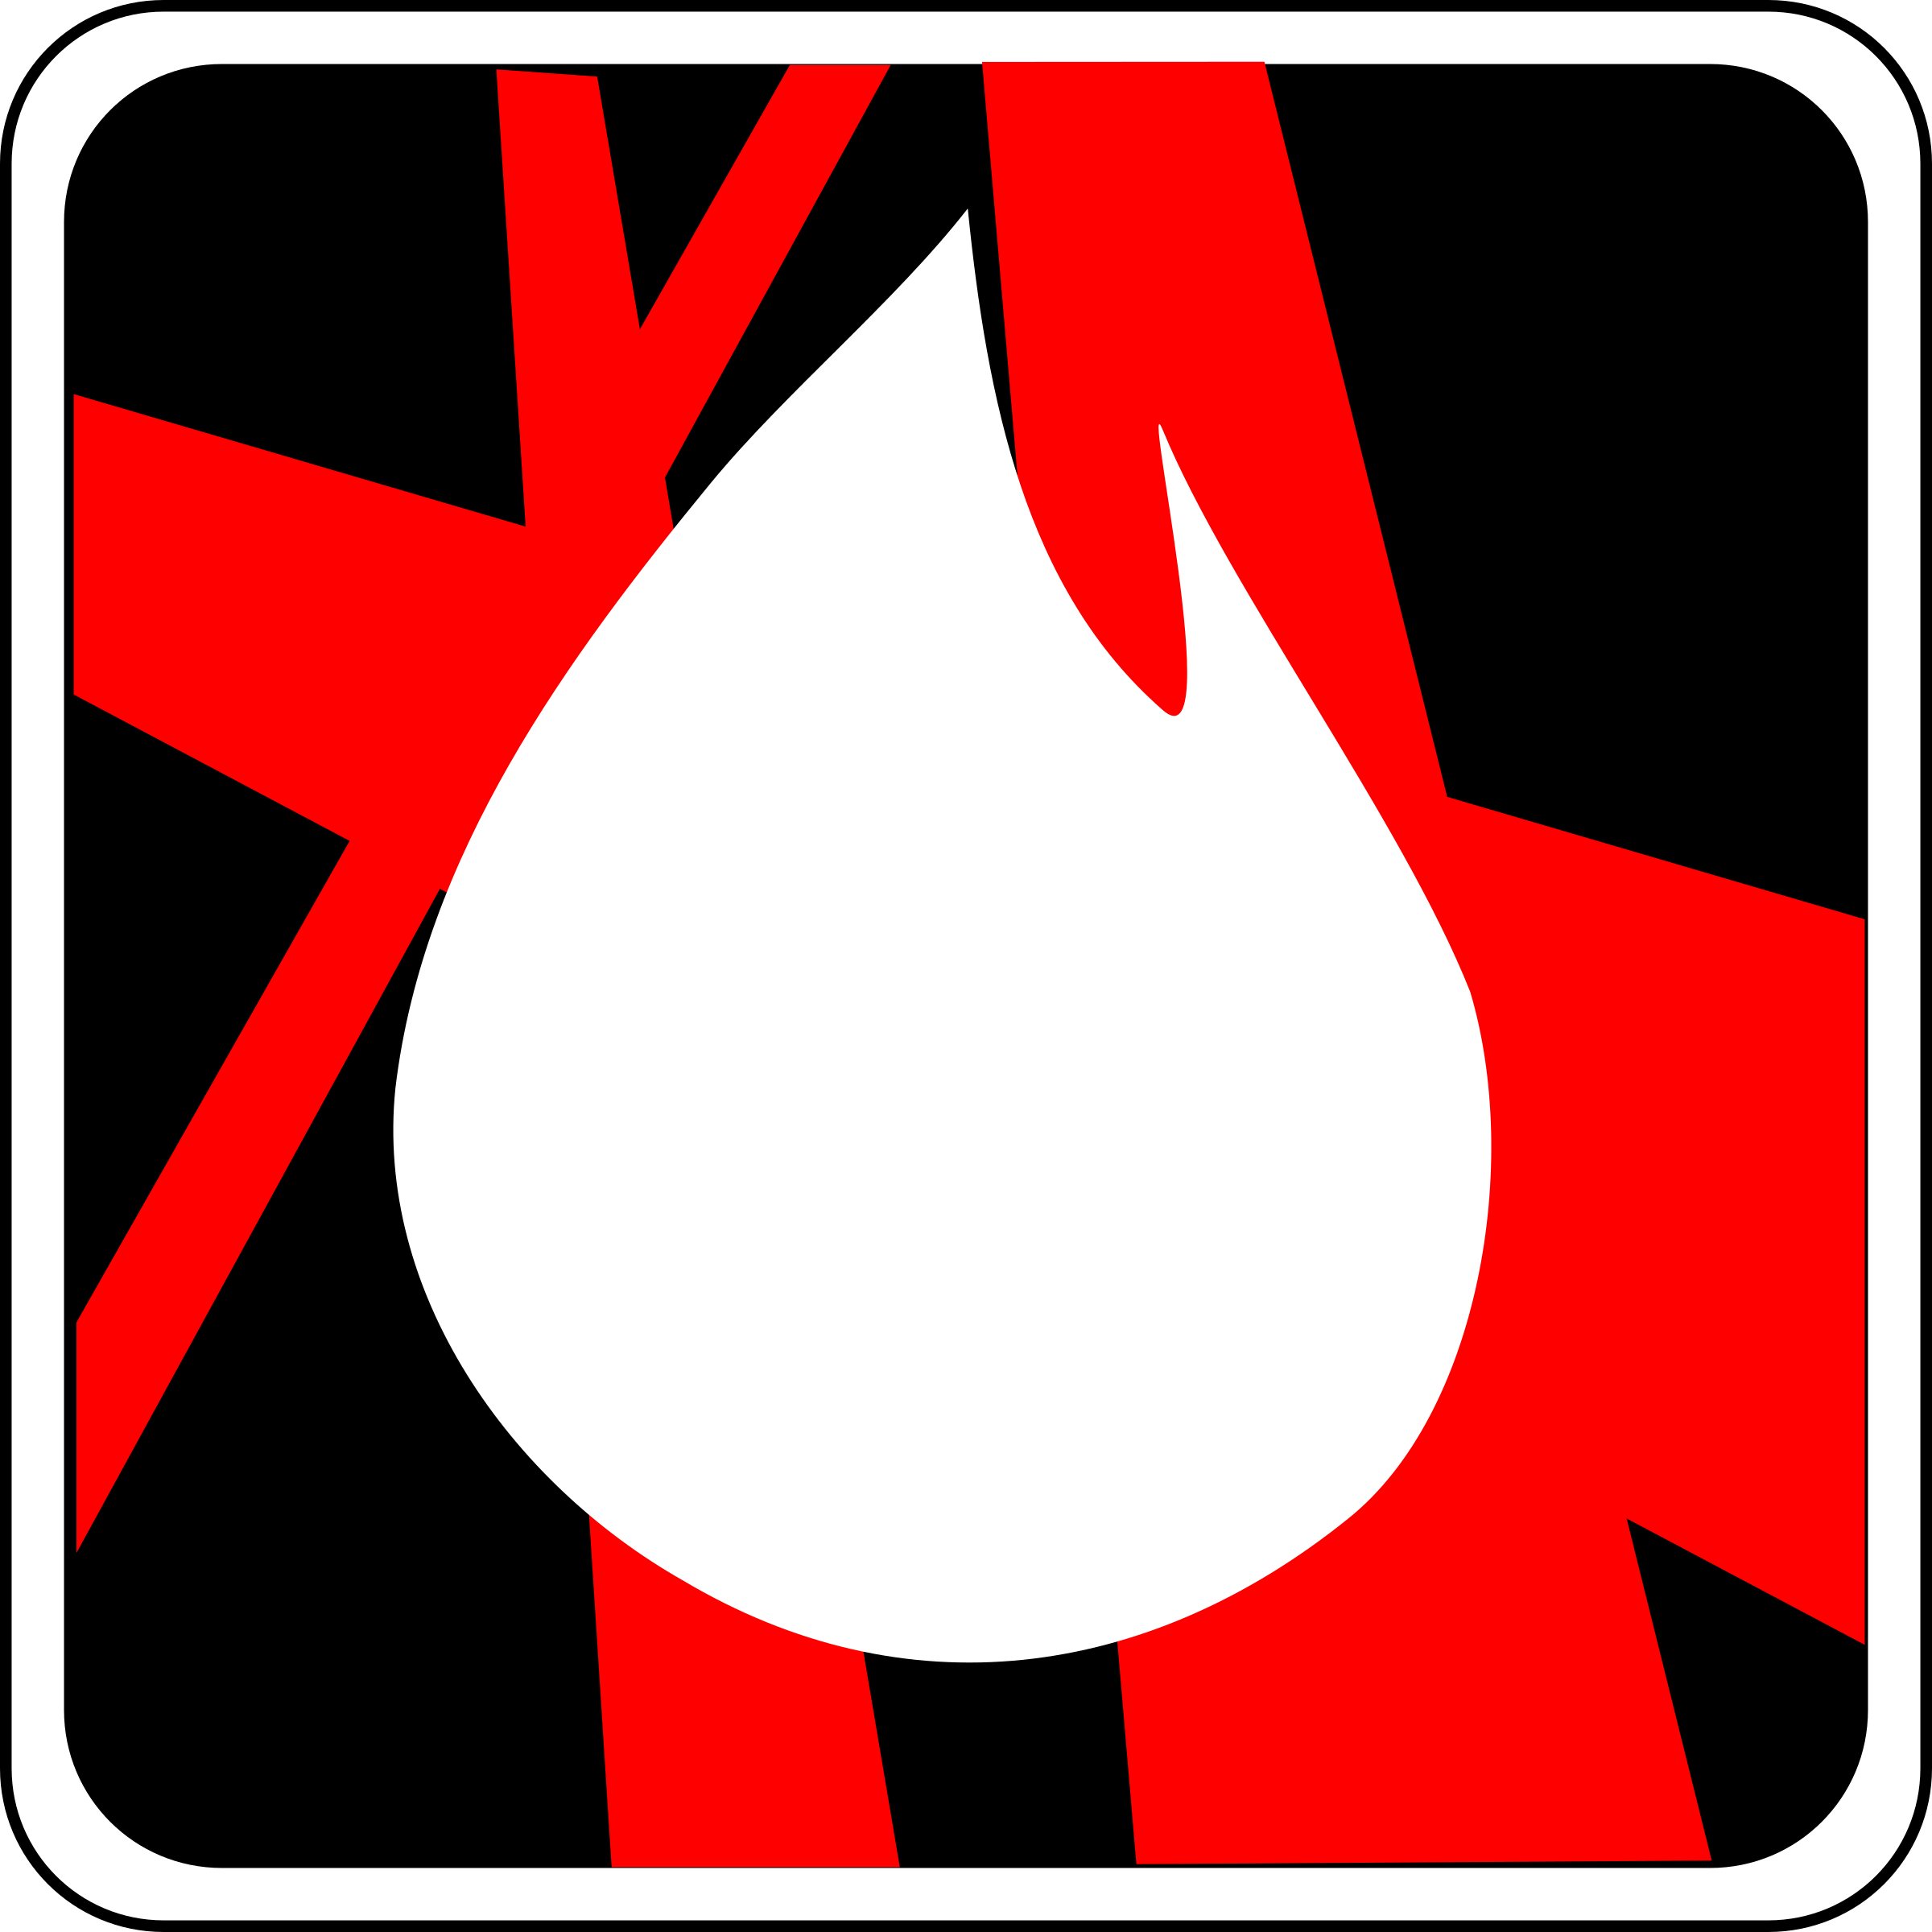 Holy clipart holy spirit. Fire big image png